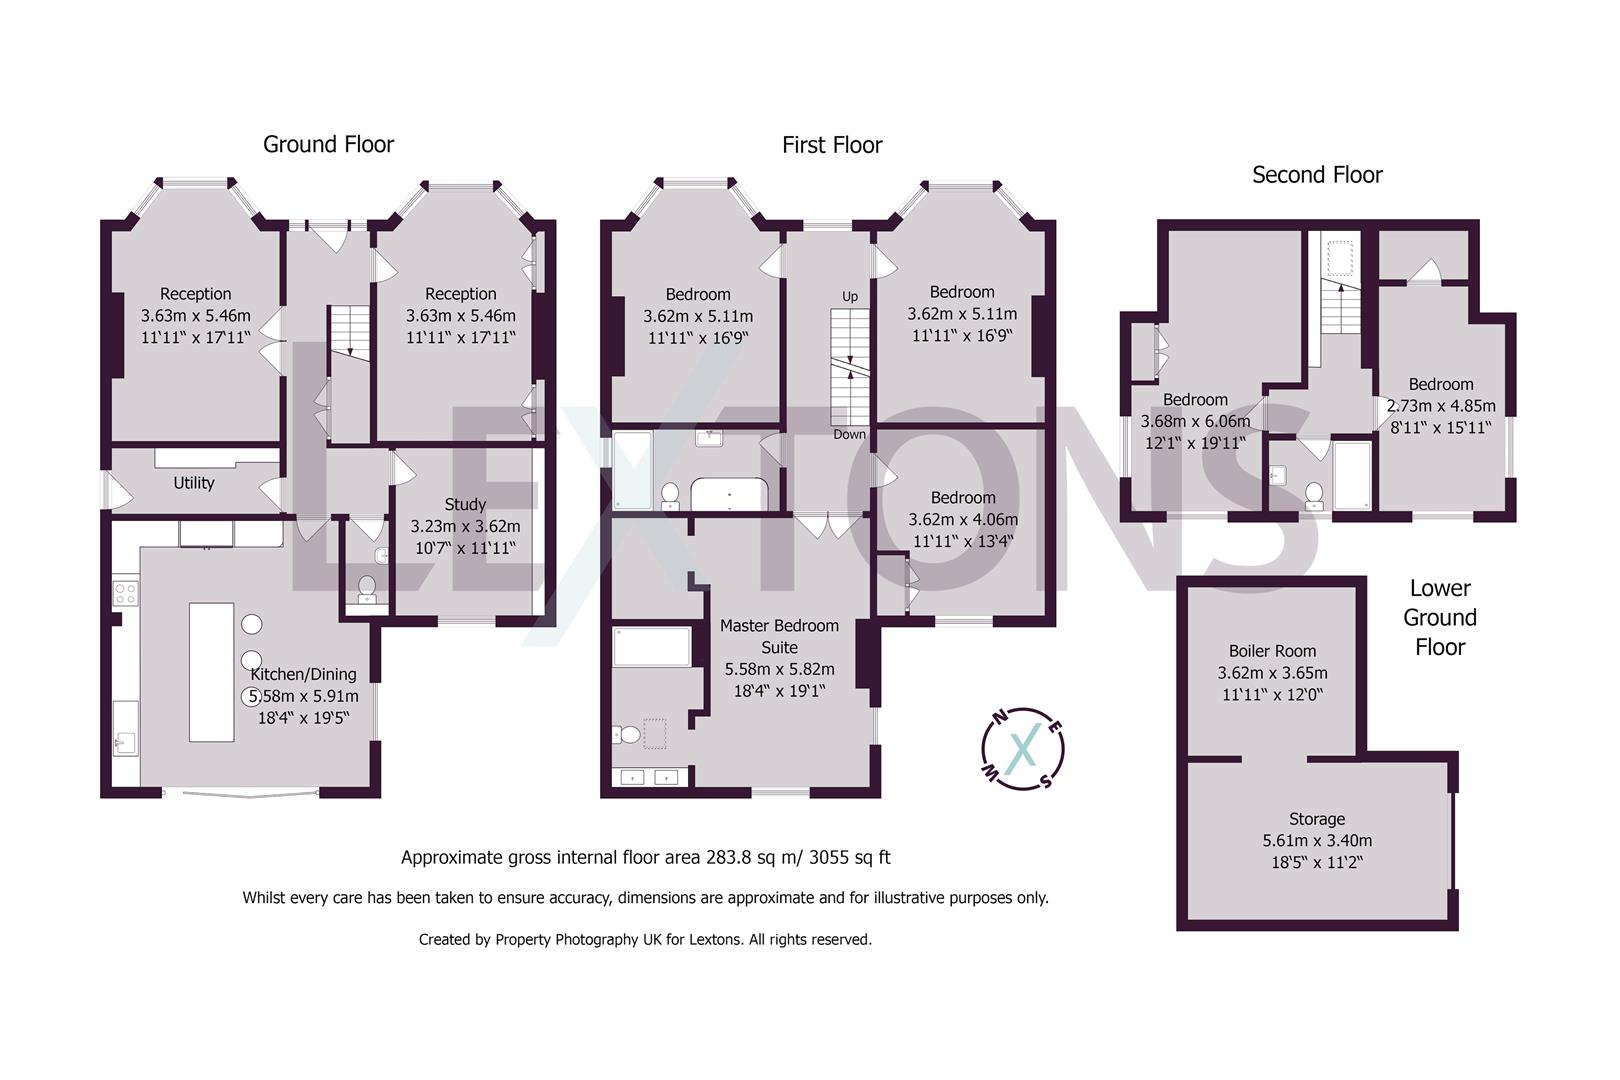 Floorplans For Wilbury Avenue, Hove